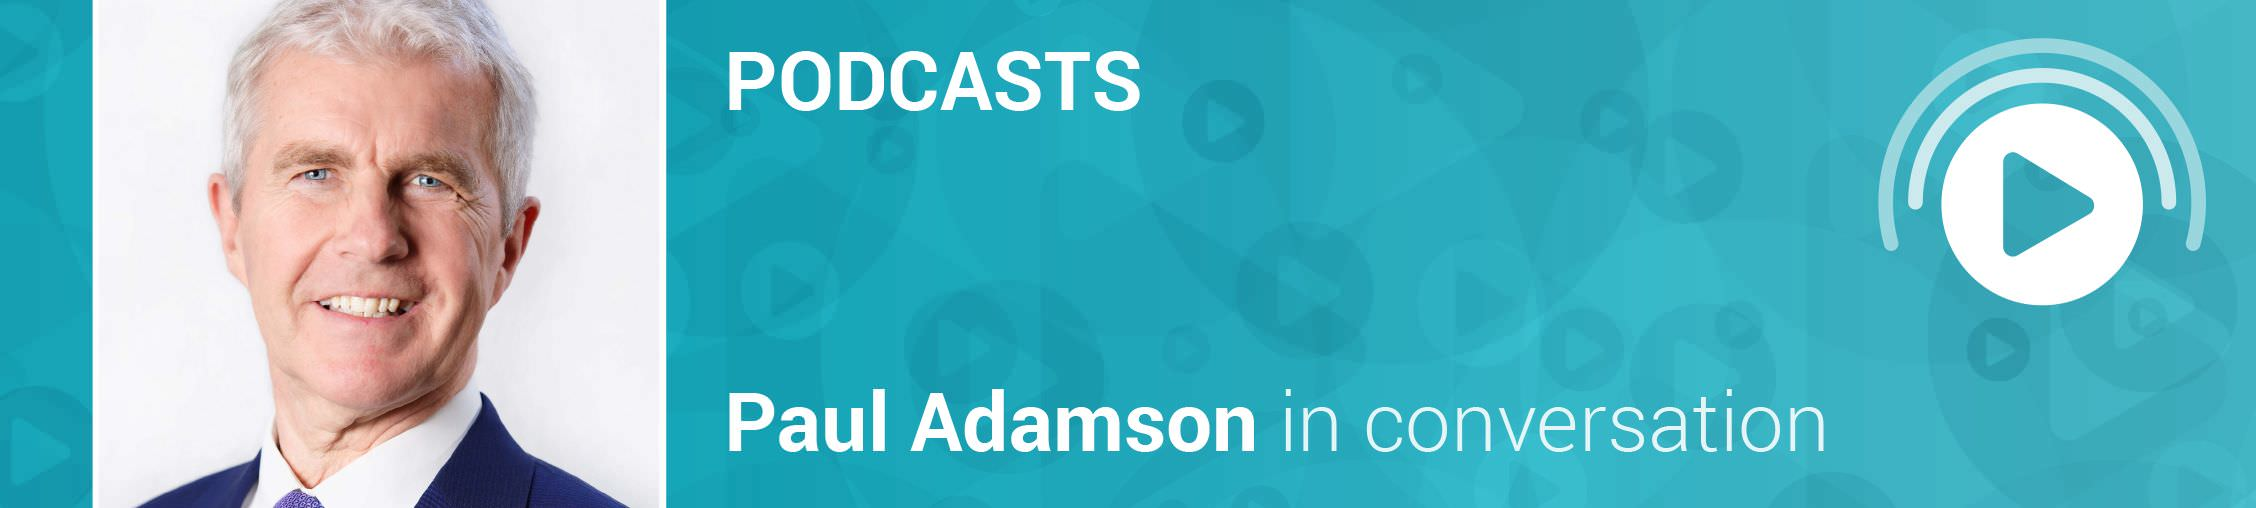 Podcasts: Paul Adamson in conversation